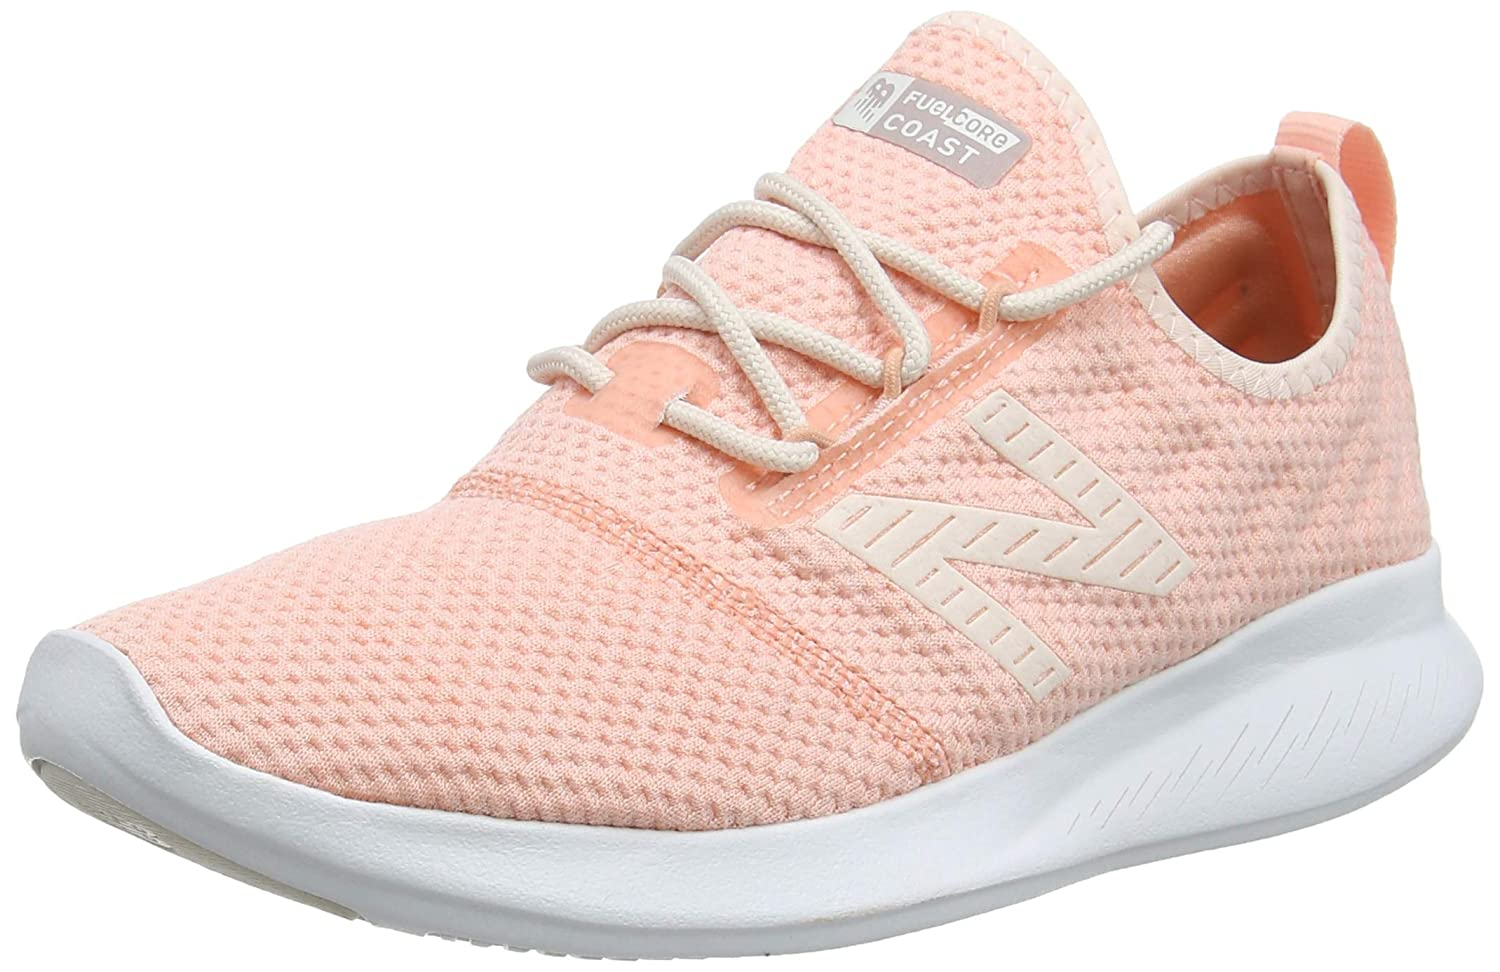 Rose Mist blanc Peach Champagne Metallic New Balance Fuel Core Coast V4, Running Femme 36 D EU